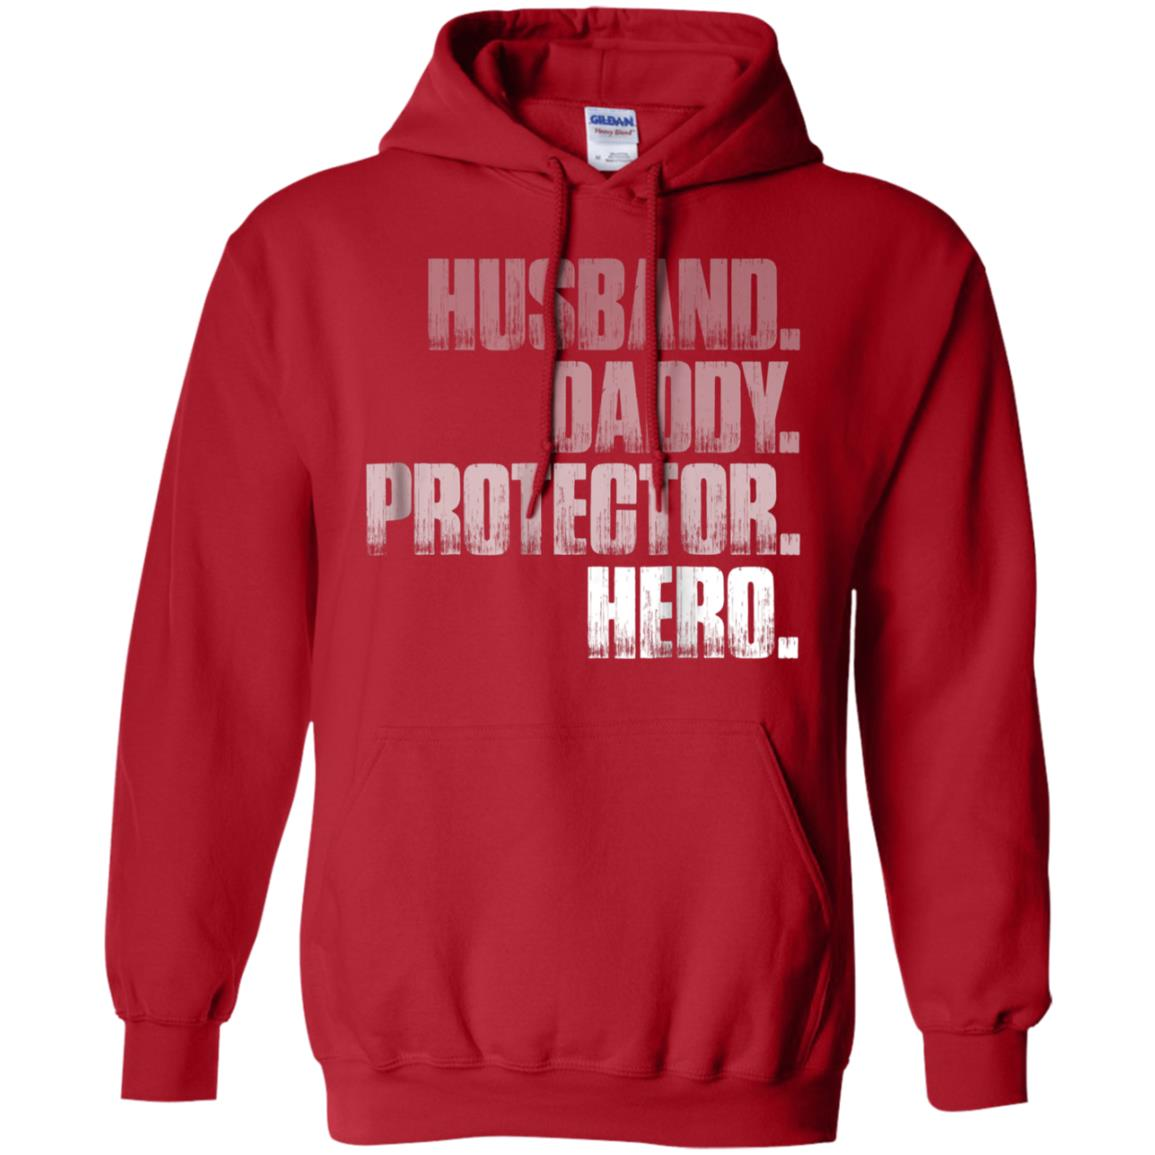 71813944 Awesome husband daddy protector hero t shirt cool father dad tee ...